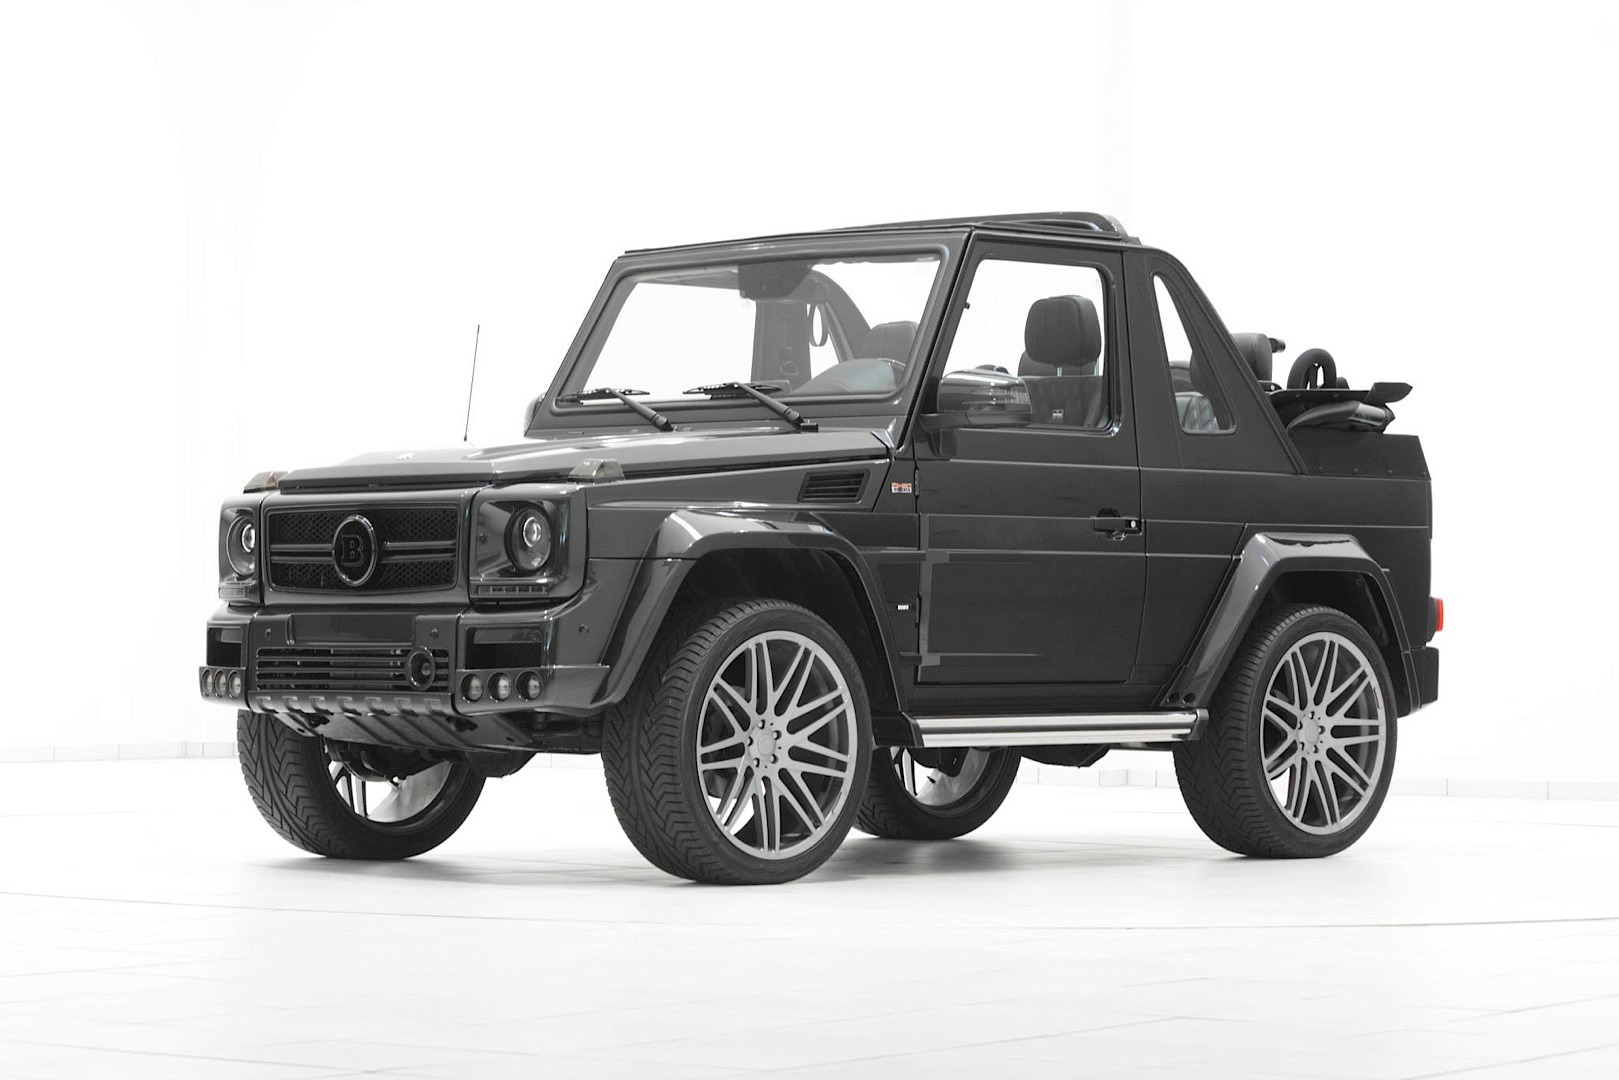 brabus g class cabrio looks too evil for st tropez autoevolution. Black Bedroom Furniture Sets. Home Design Ideas